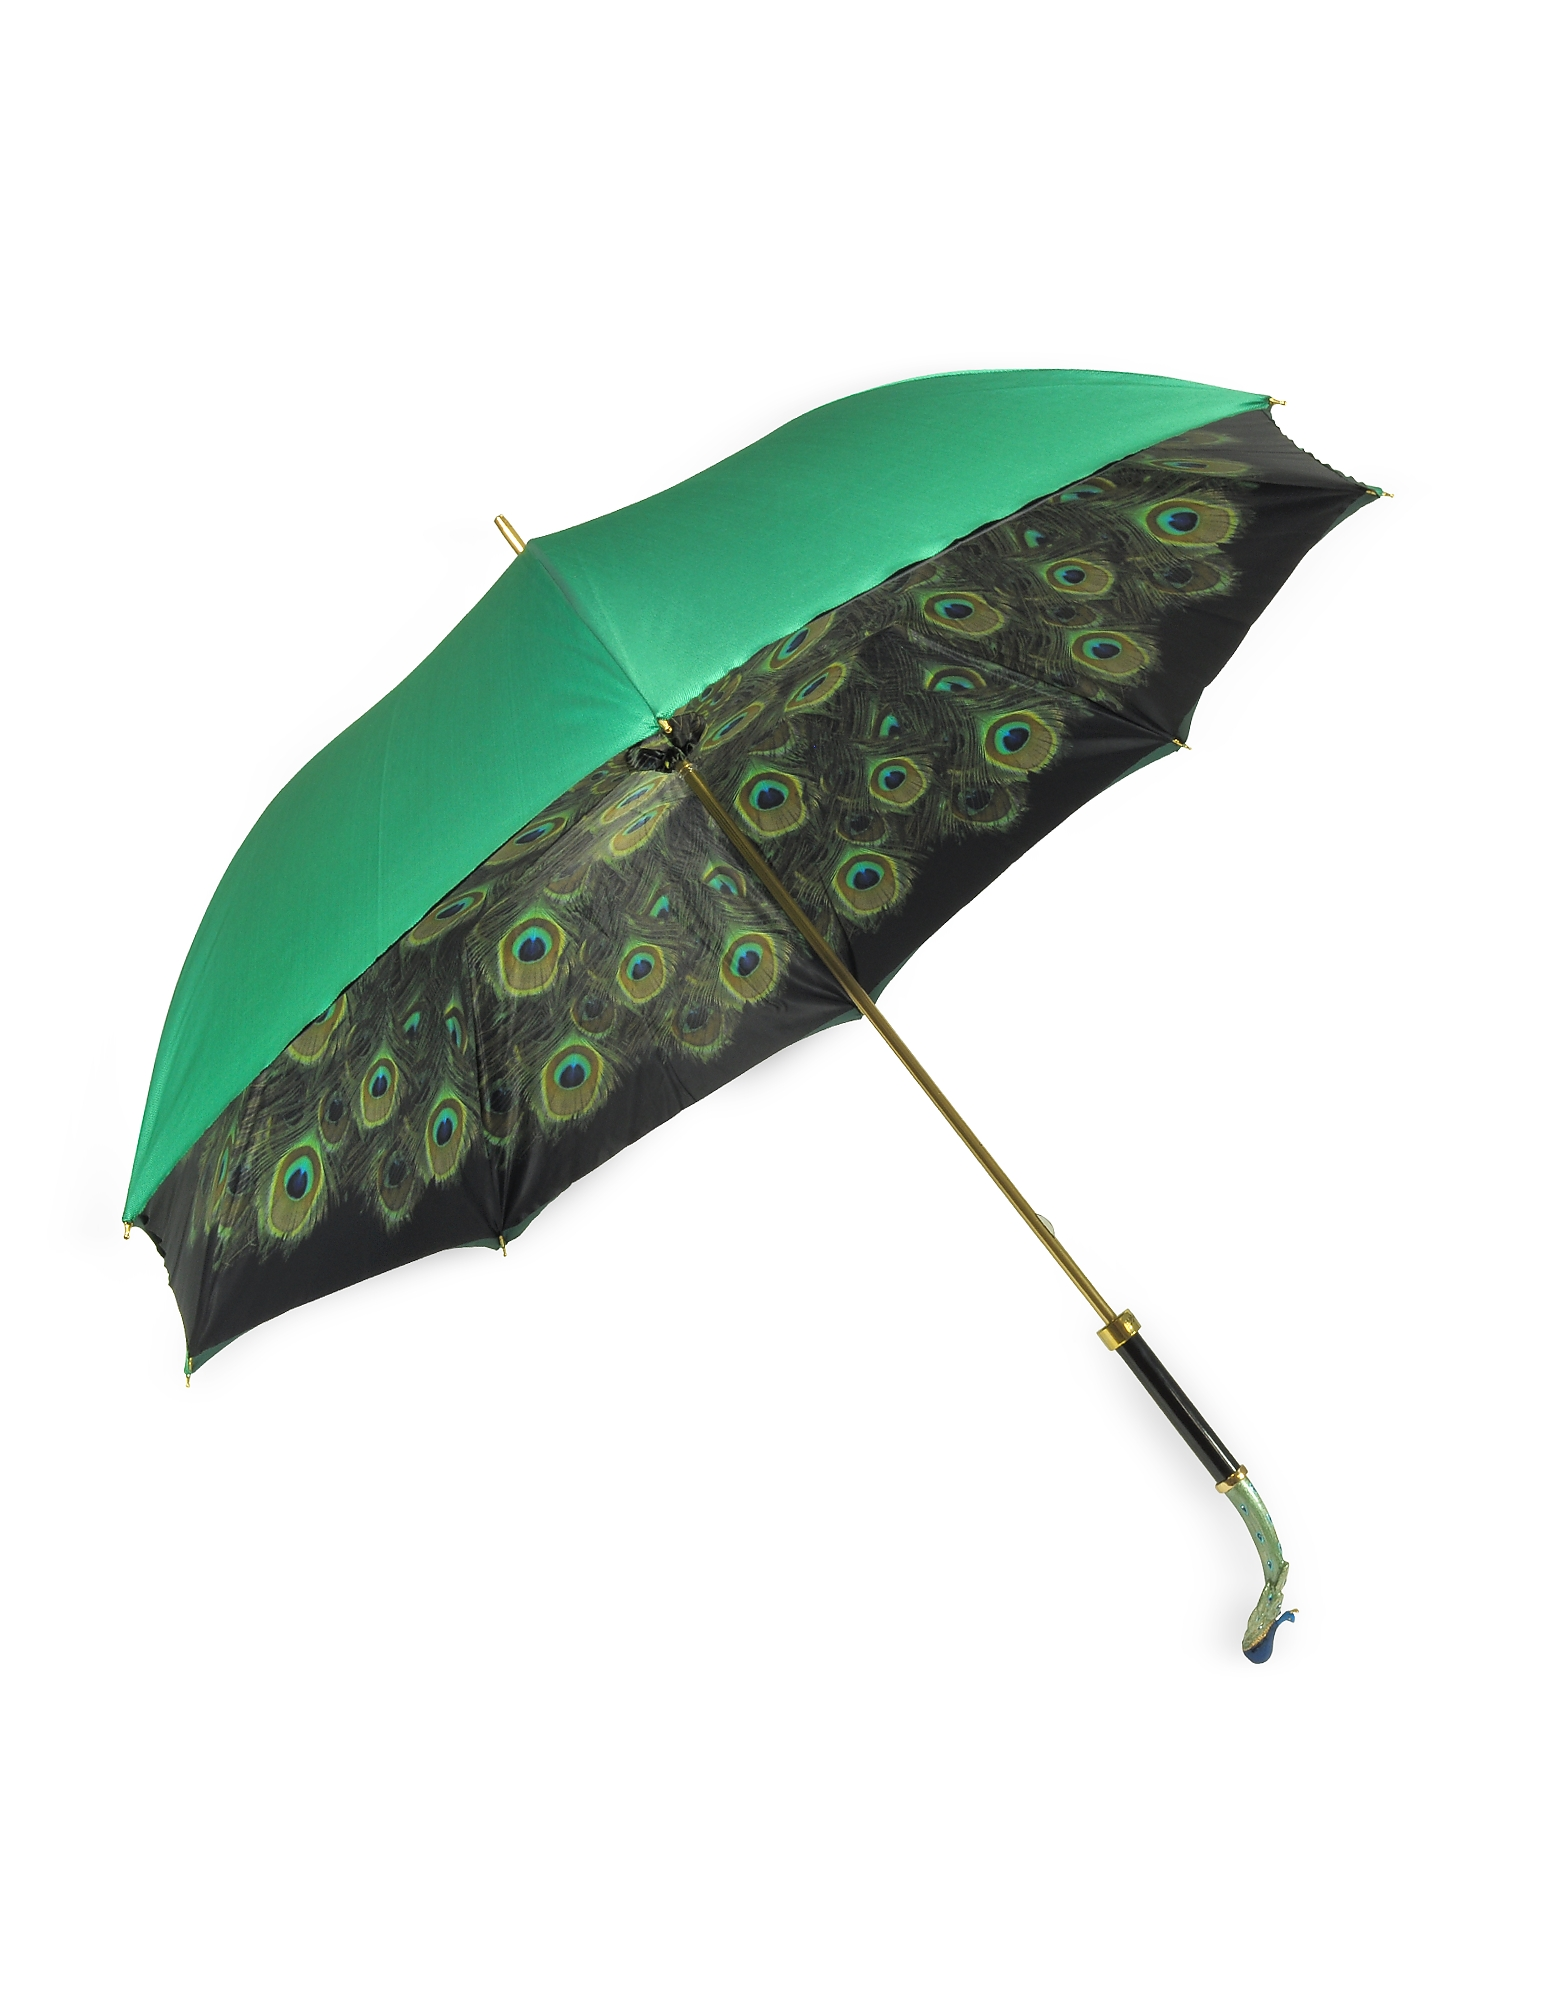 Green/Animal Print Women's Umbrella w/Luxury Peacock Handle от Forzieri.com INT